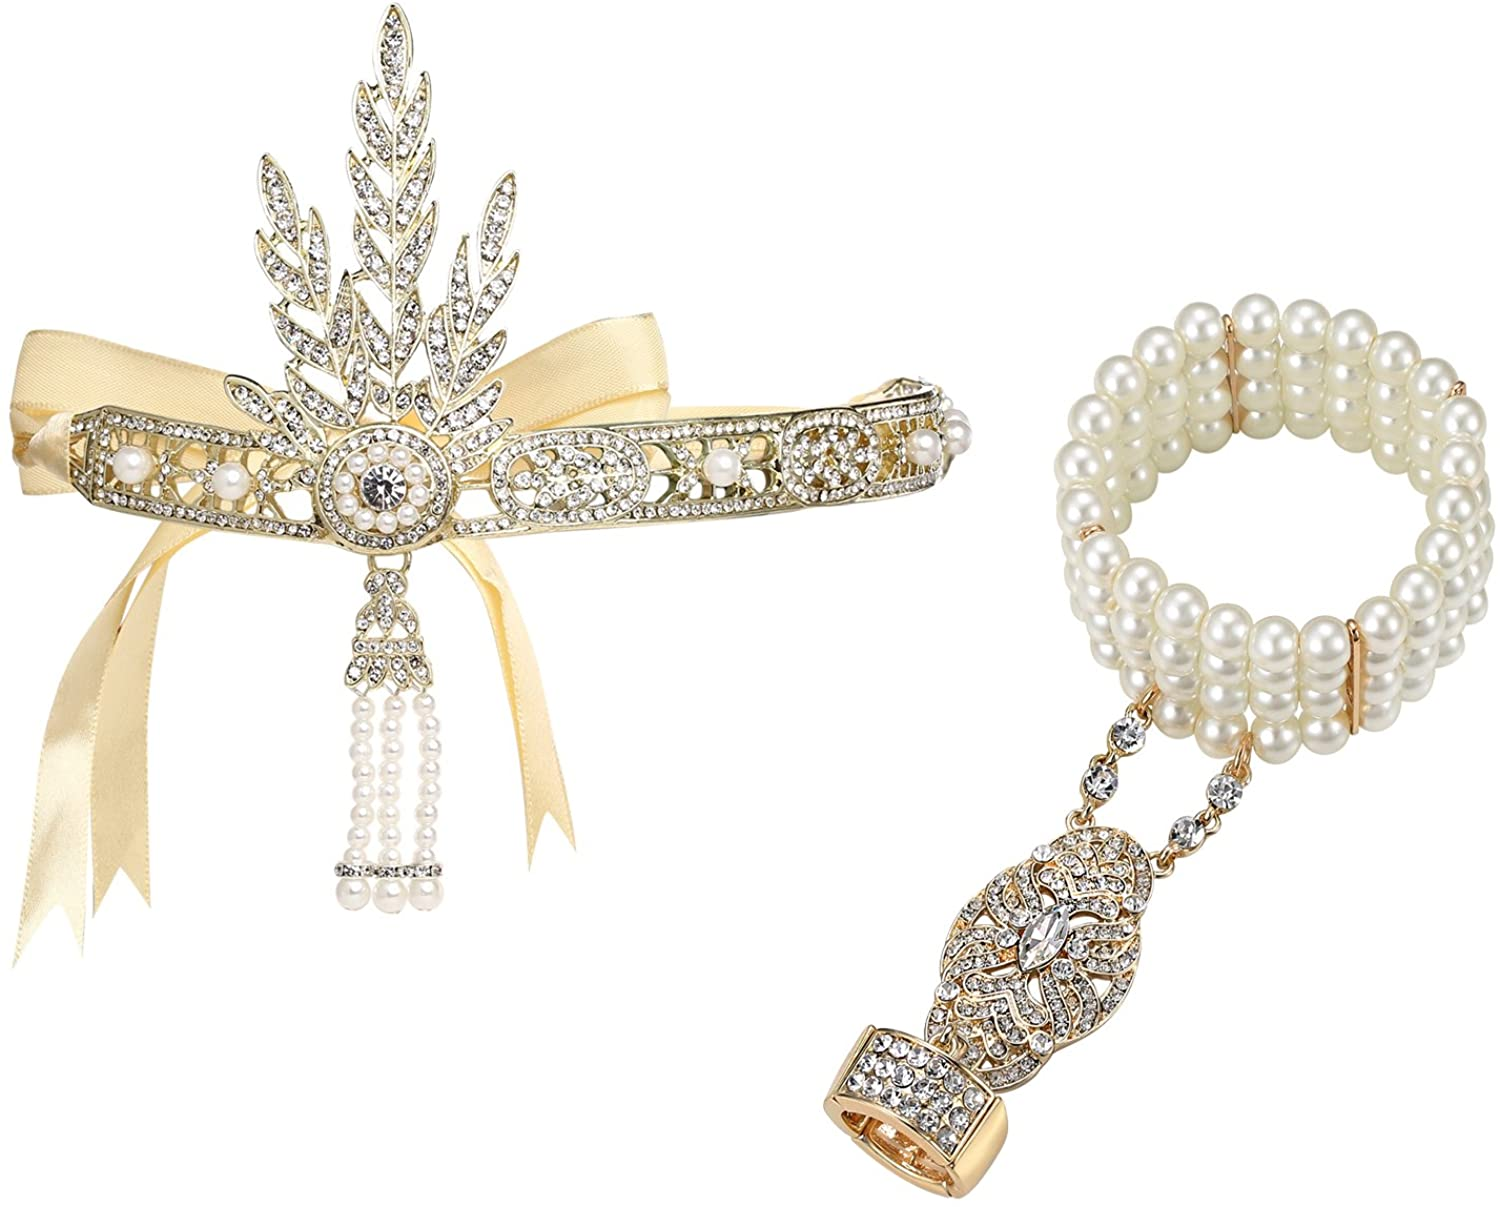 BABEYOND 1920s Flapper Headband and Gatsby Bracelet Adjustable Ring Set Great Gatsby Inspired Leaf Simulated 1920s Jewelry Set Gold-Tone